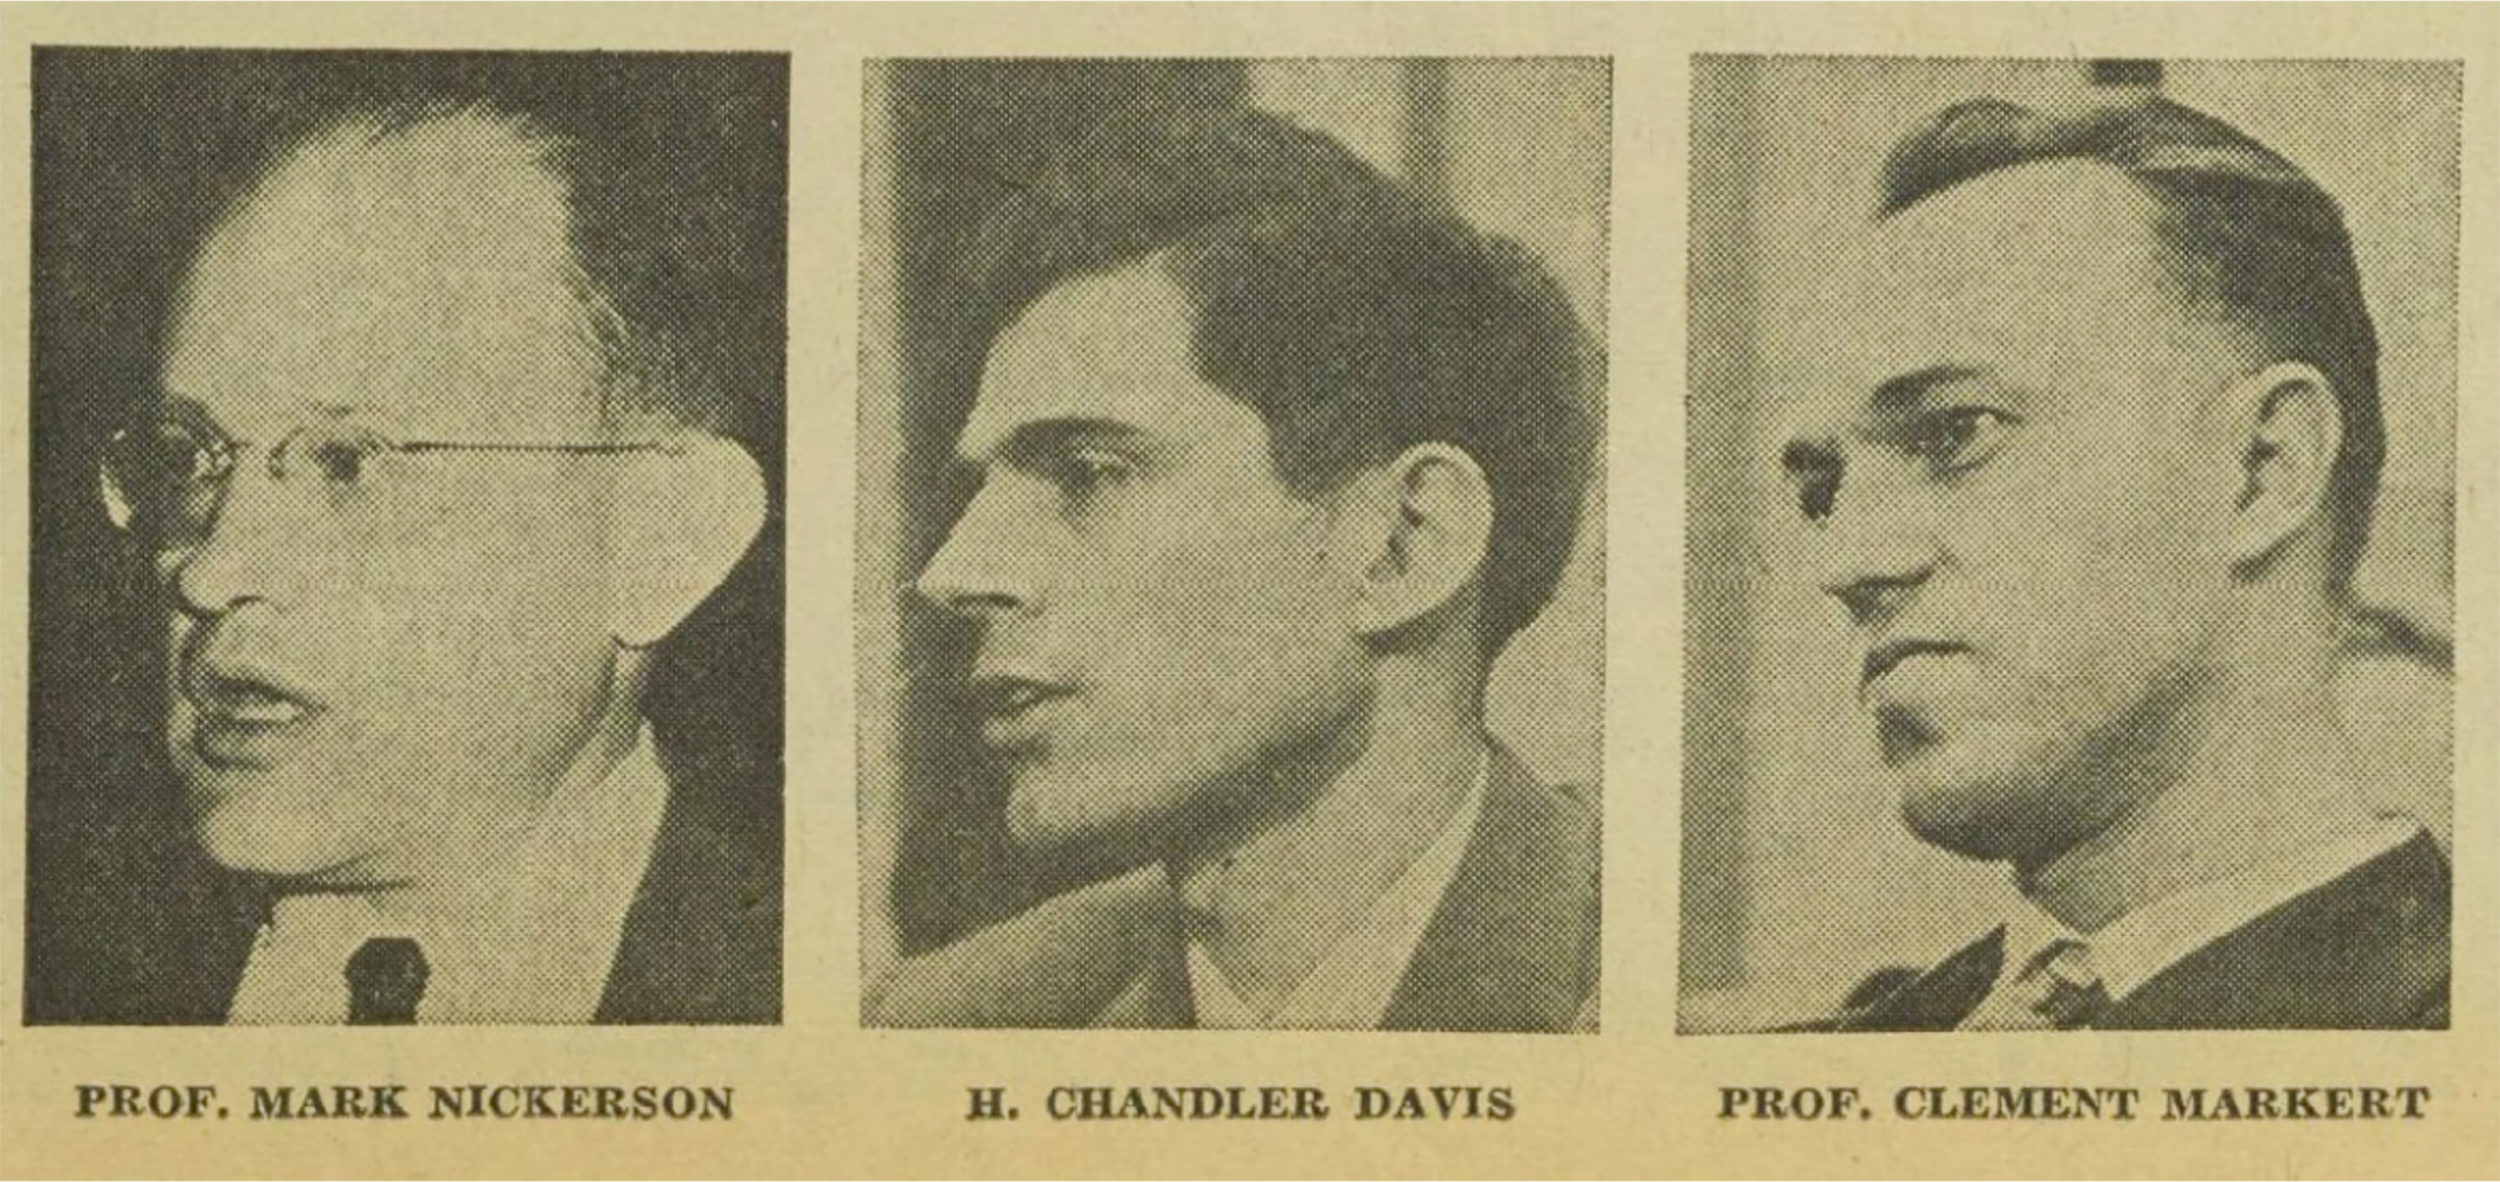 Mark Nickerson, Chandler Davis and Clement Markert